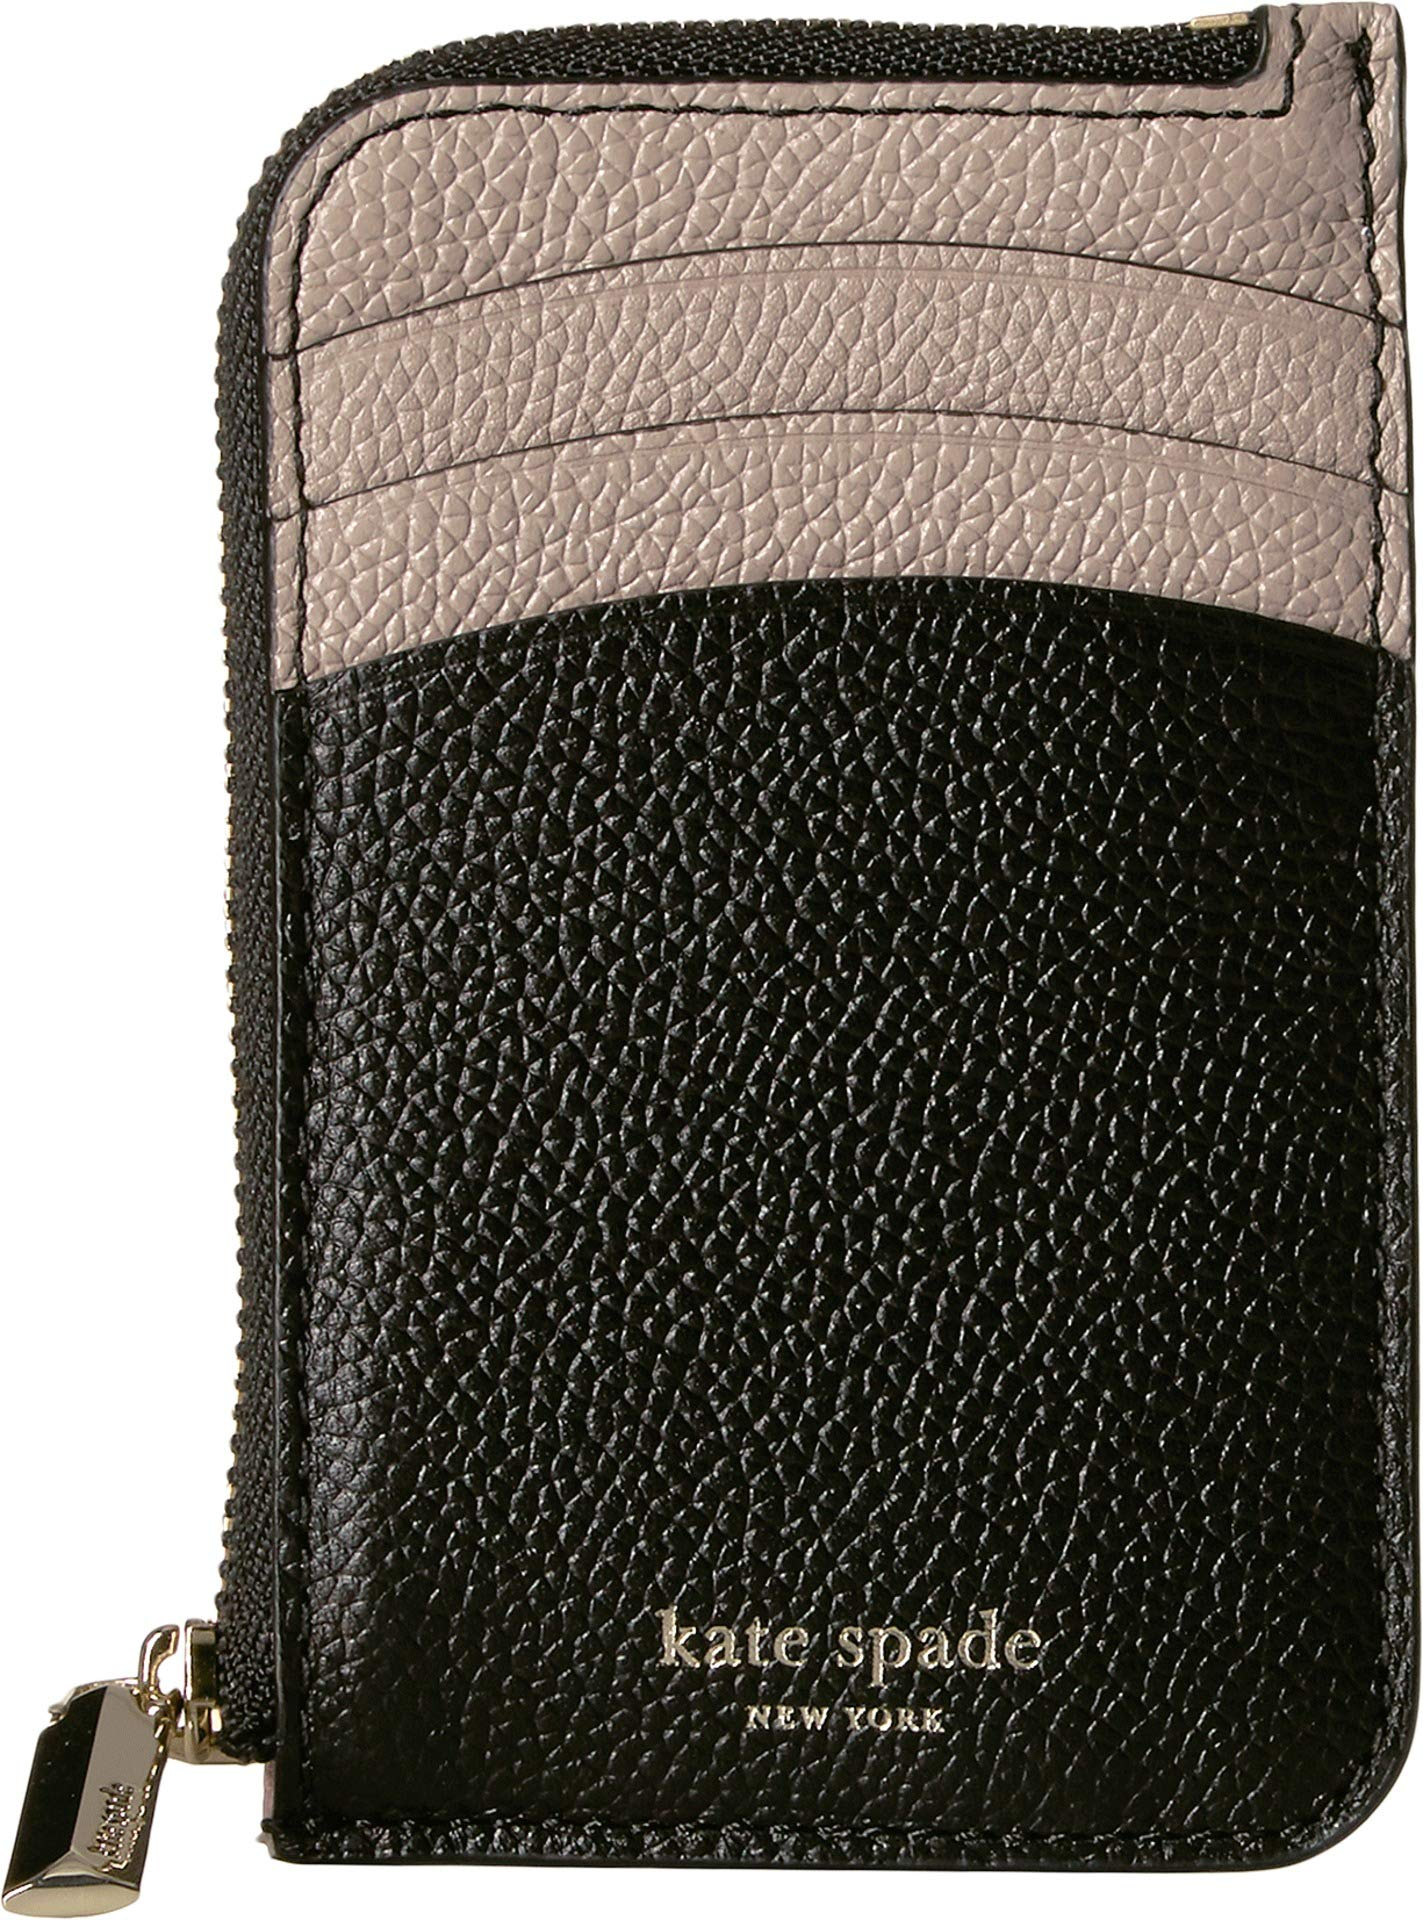 Kate Spade New York Women's Margaux Zip Card Holder Black/Warm Taupe One Size by Kate Spade New York